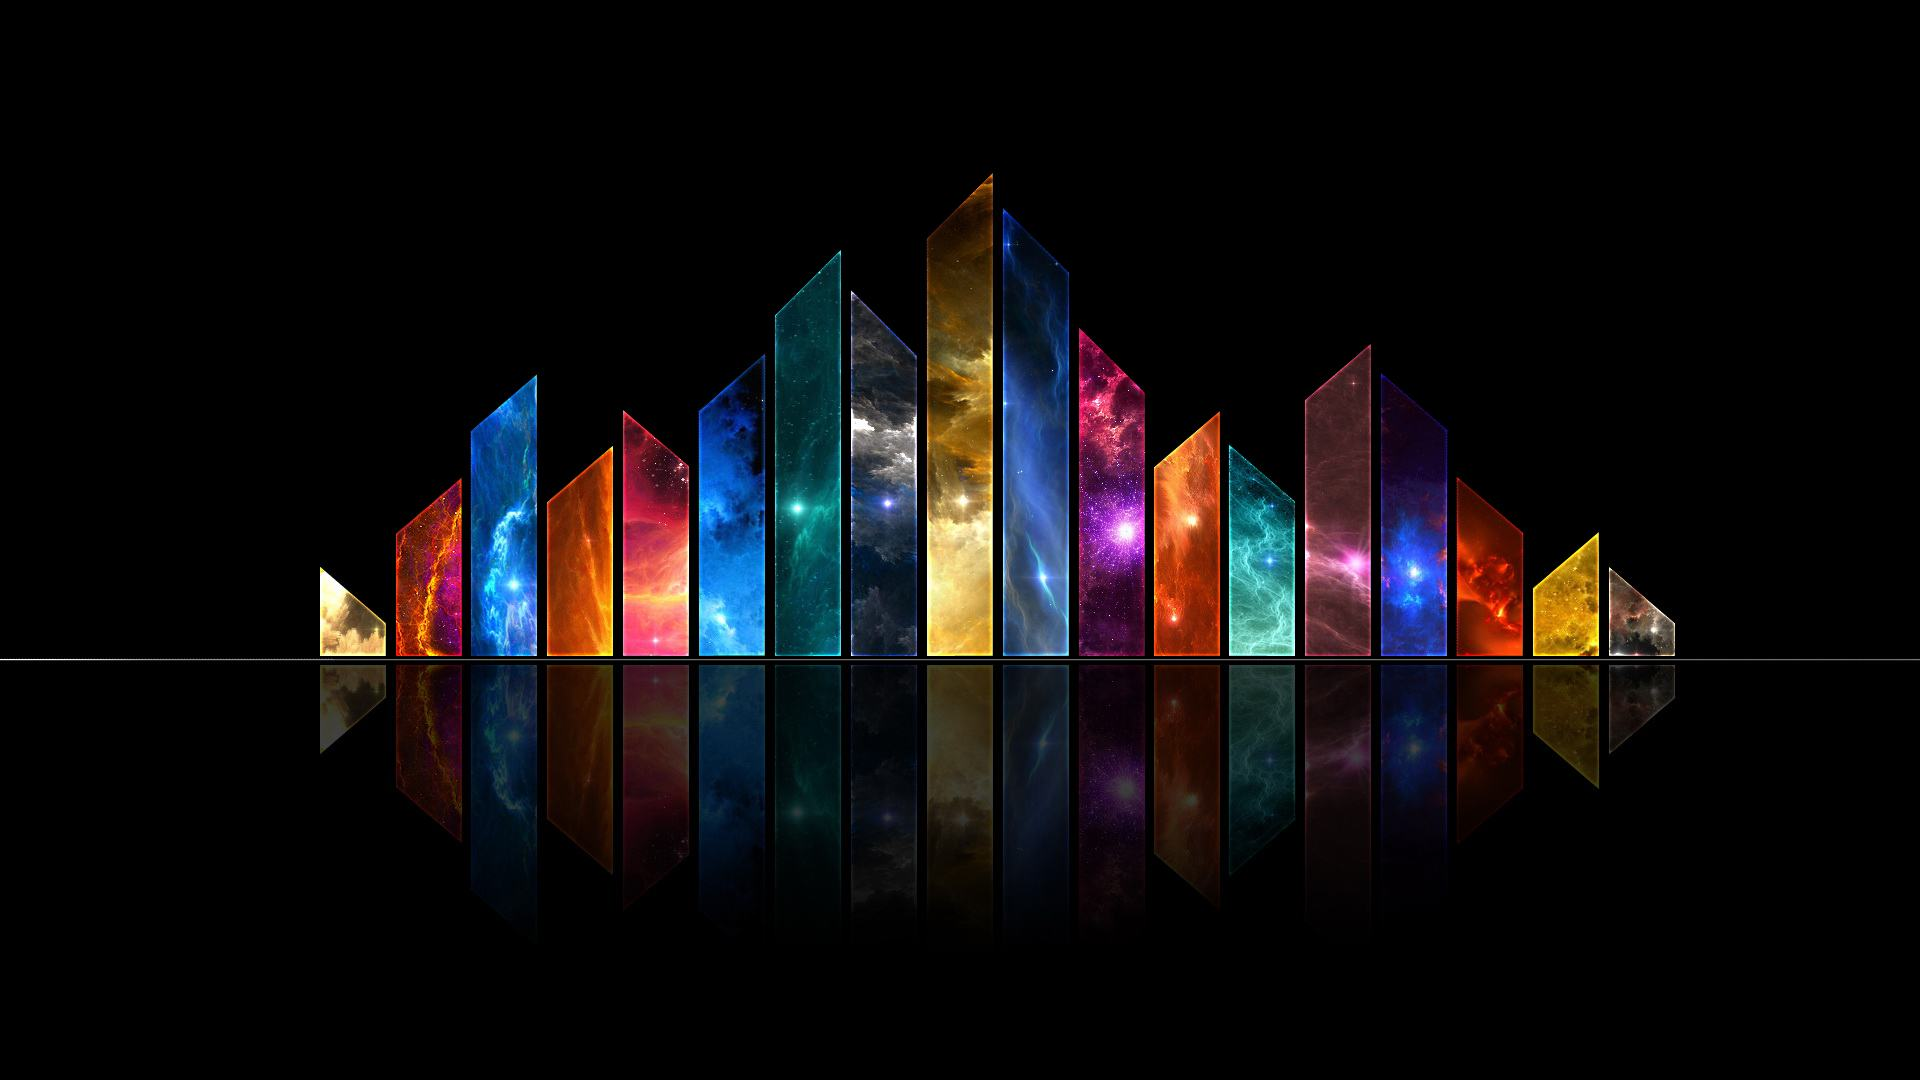 Wallpaper download kodi - Best Hd Wallpapers Kodi Imghd Browse And Download Free Images And